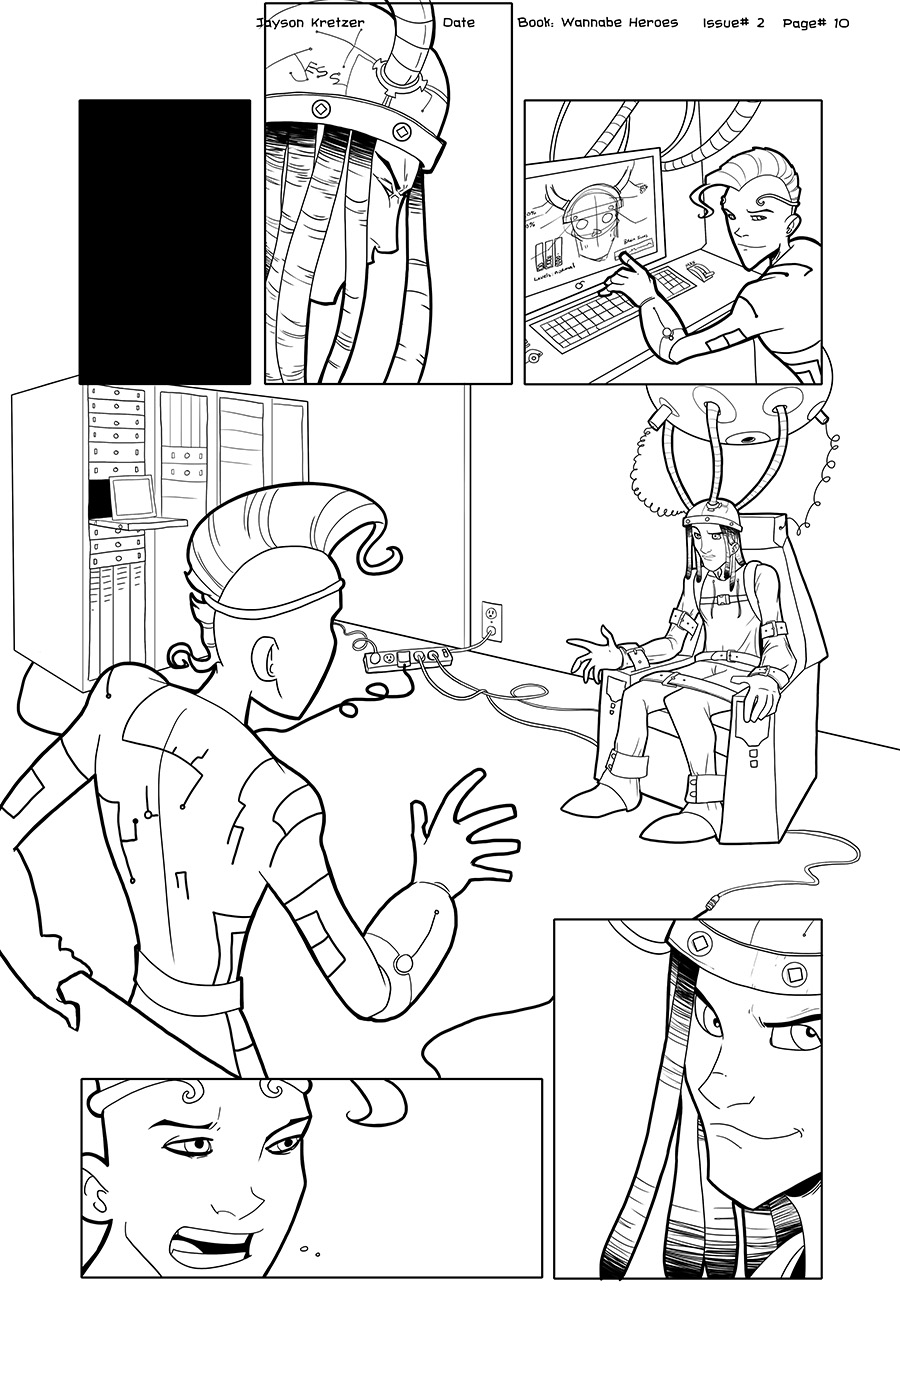 WBH Issue 2 Page 10